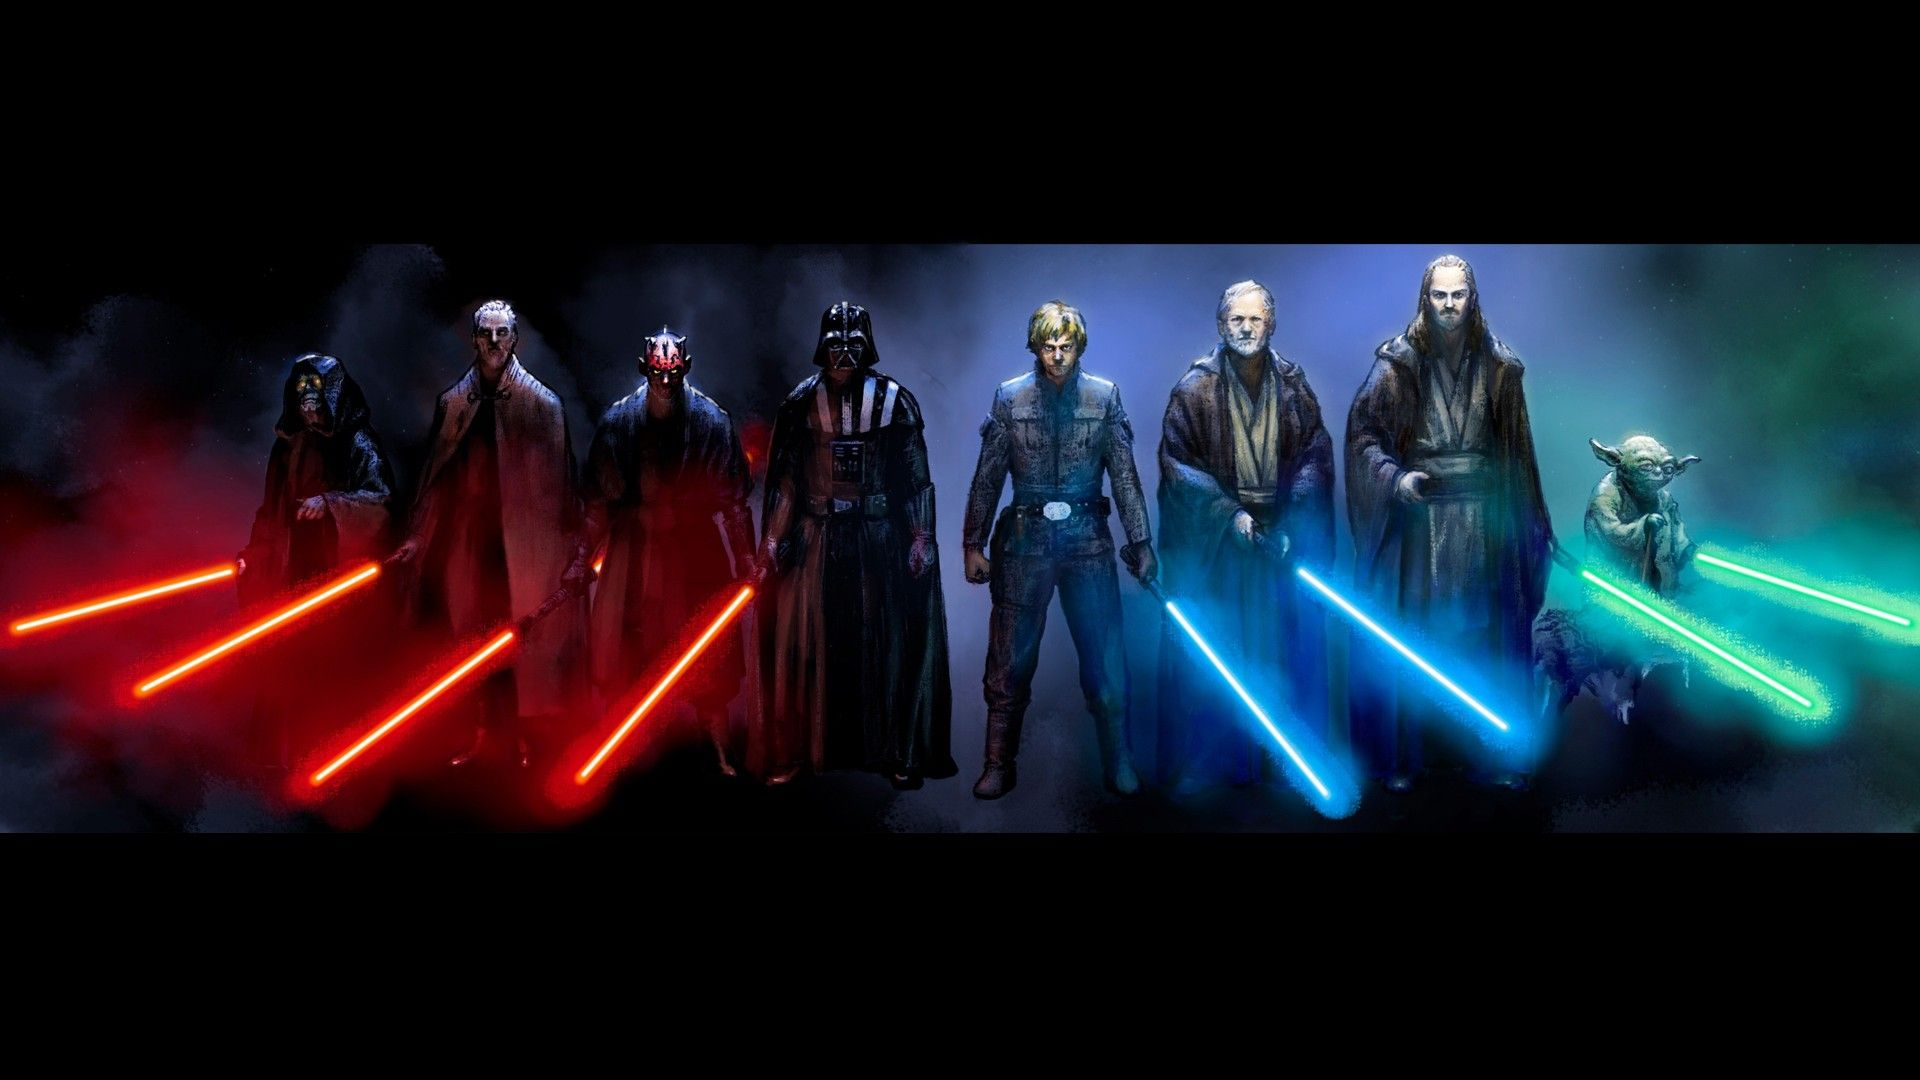 Star Wars Wallpapers Star Wars Sith Star Wars Pictures Star Wars Images